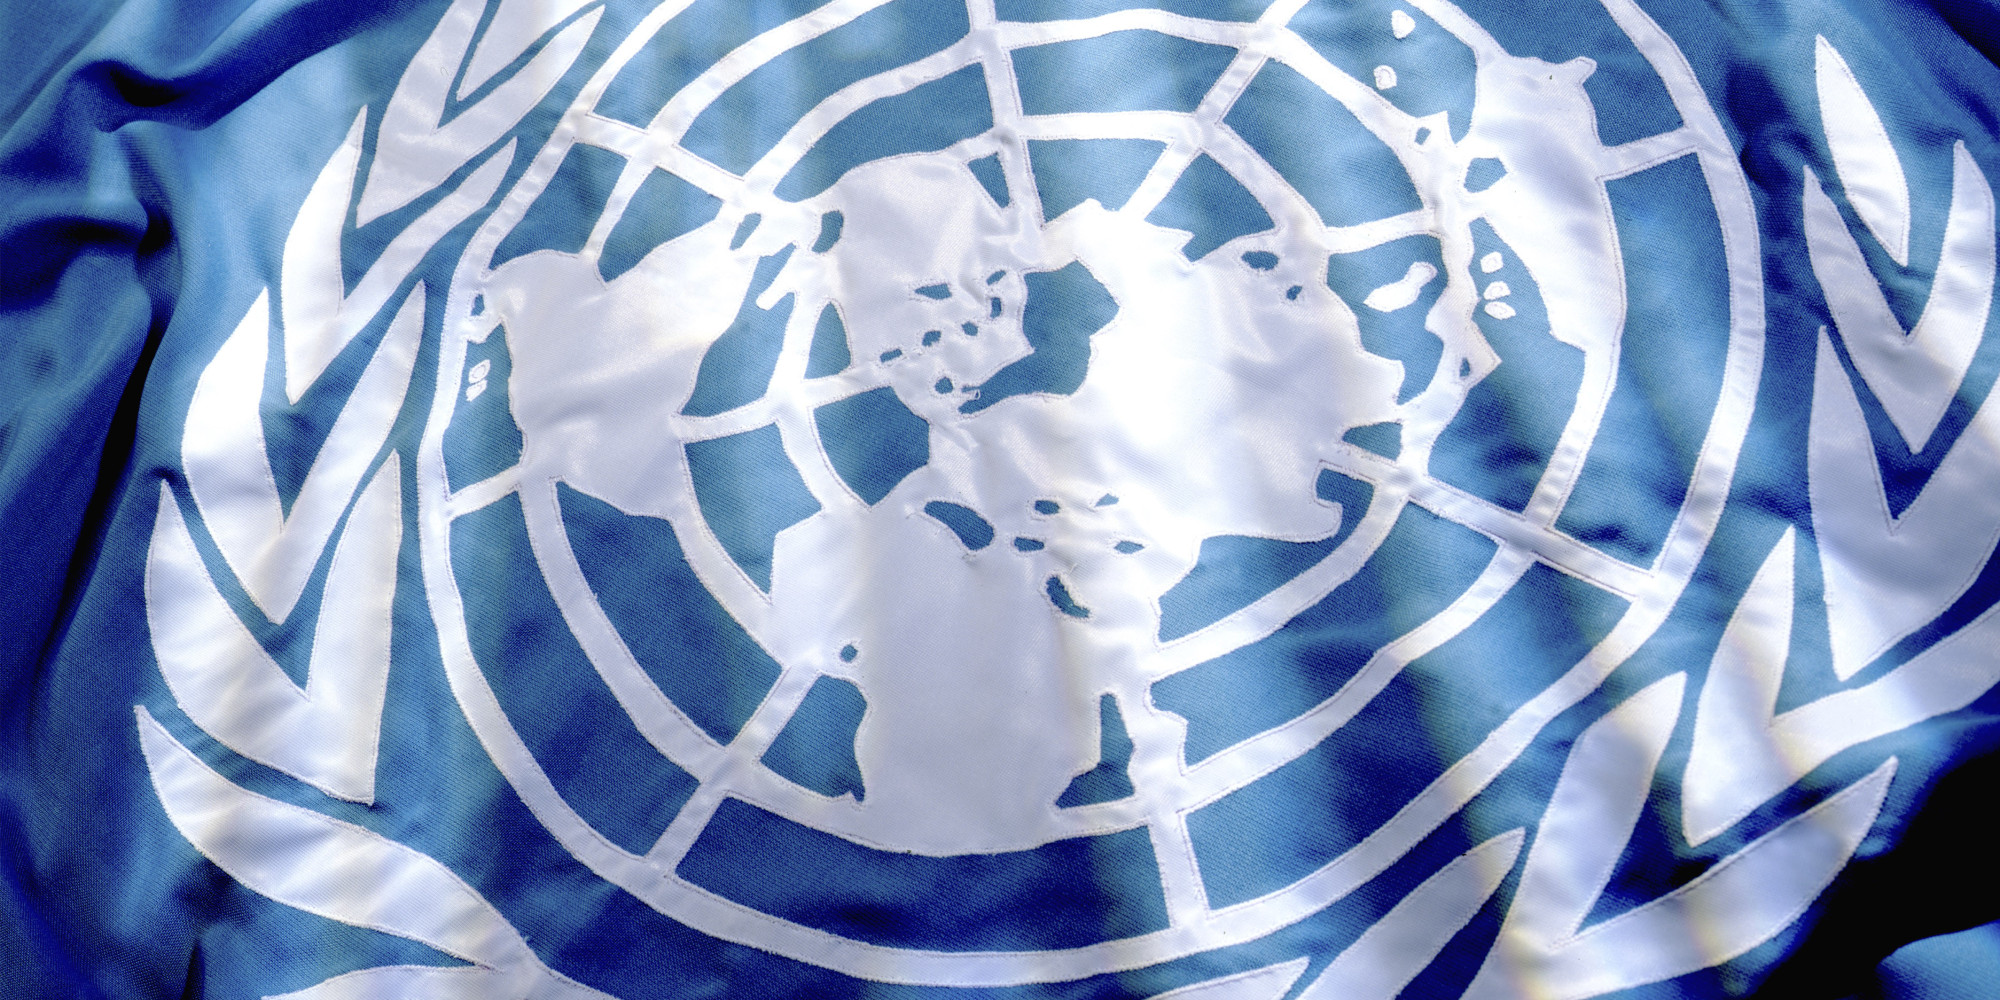 Africa loses $80b annually to Illegal Financial Flows: UN conference